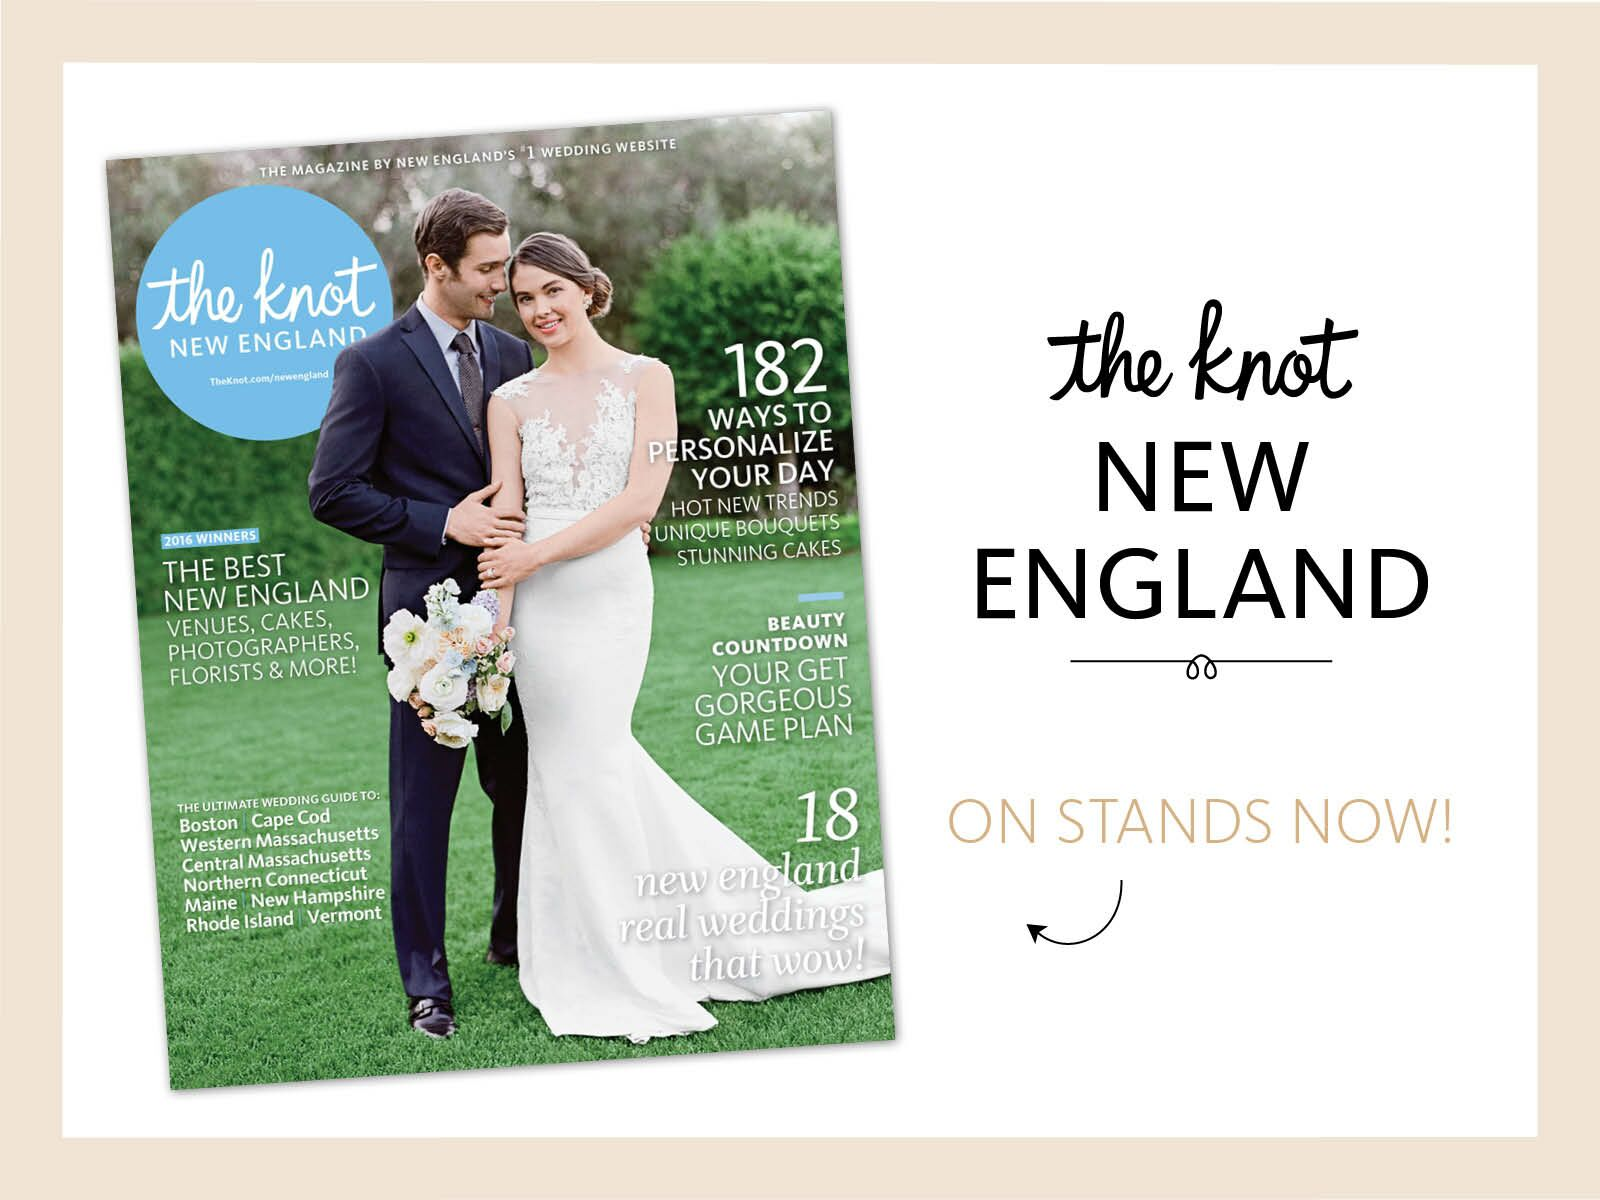 The Knot New England Magazine Is Now On Newsstands!